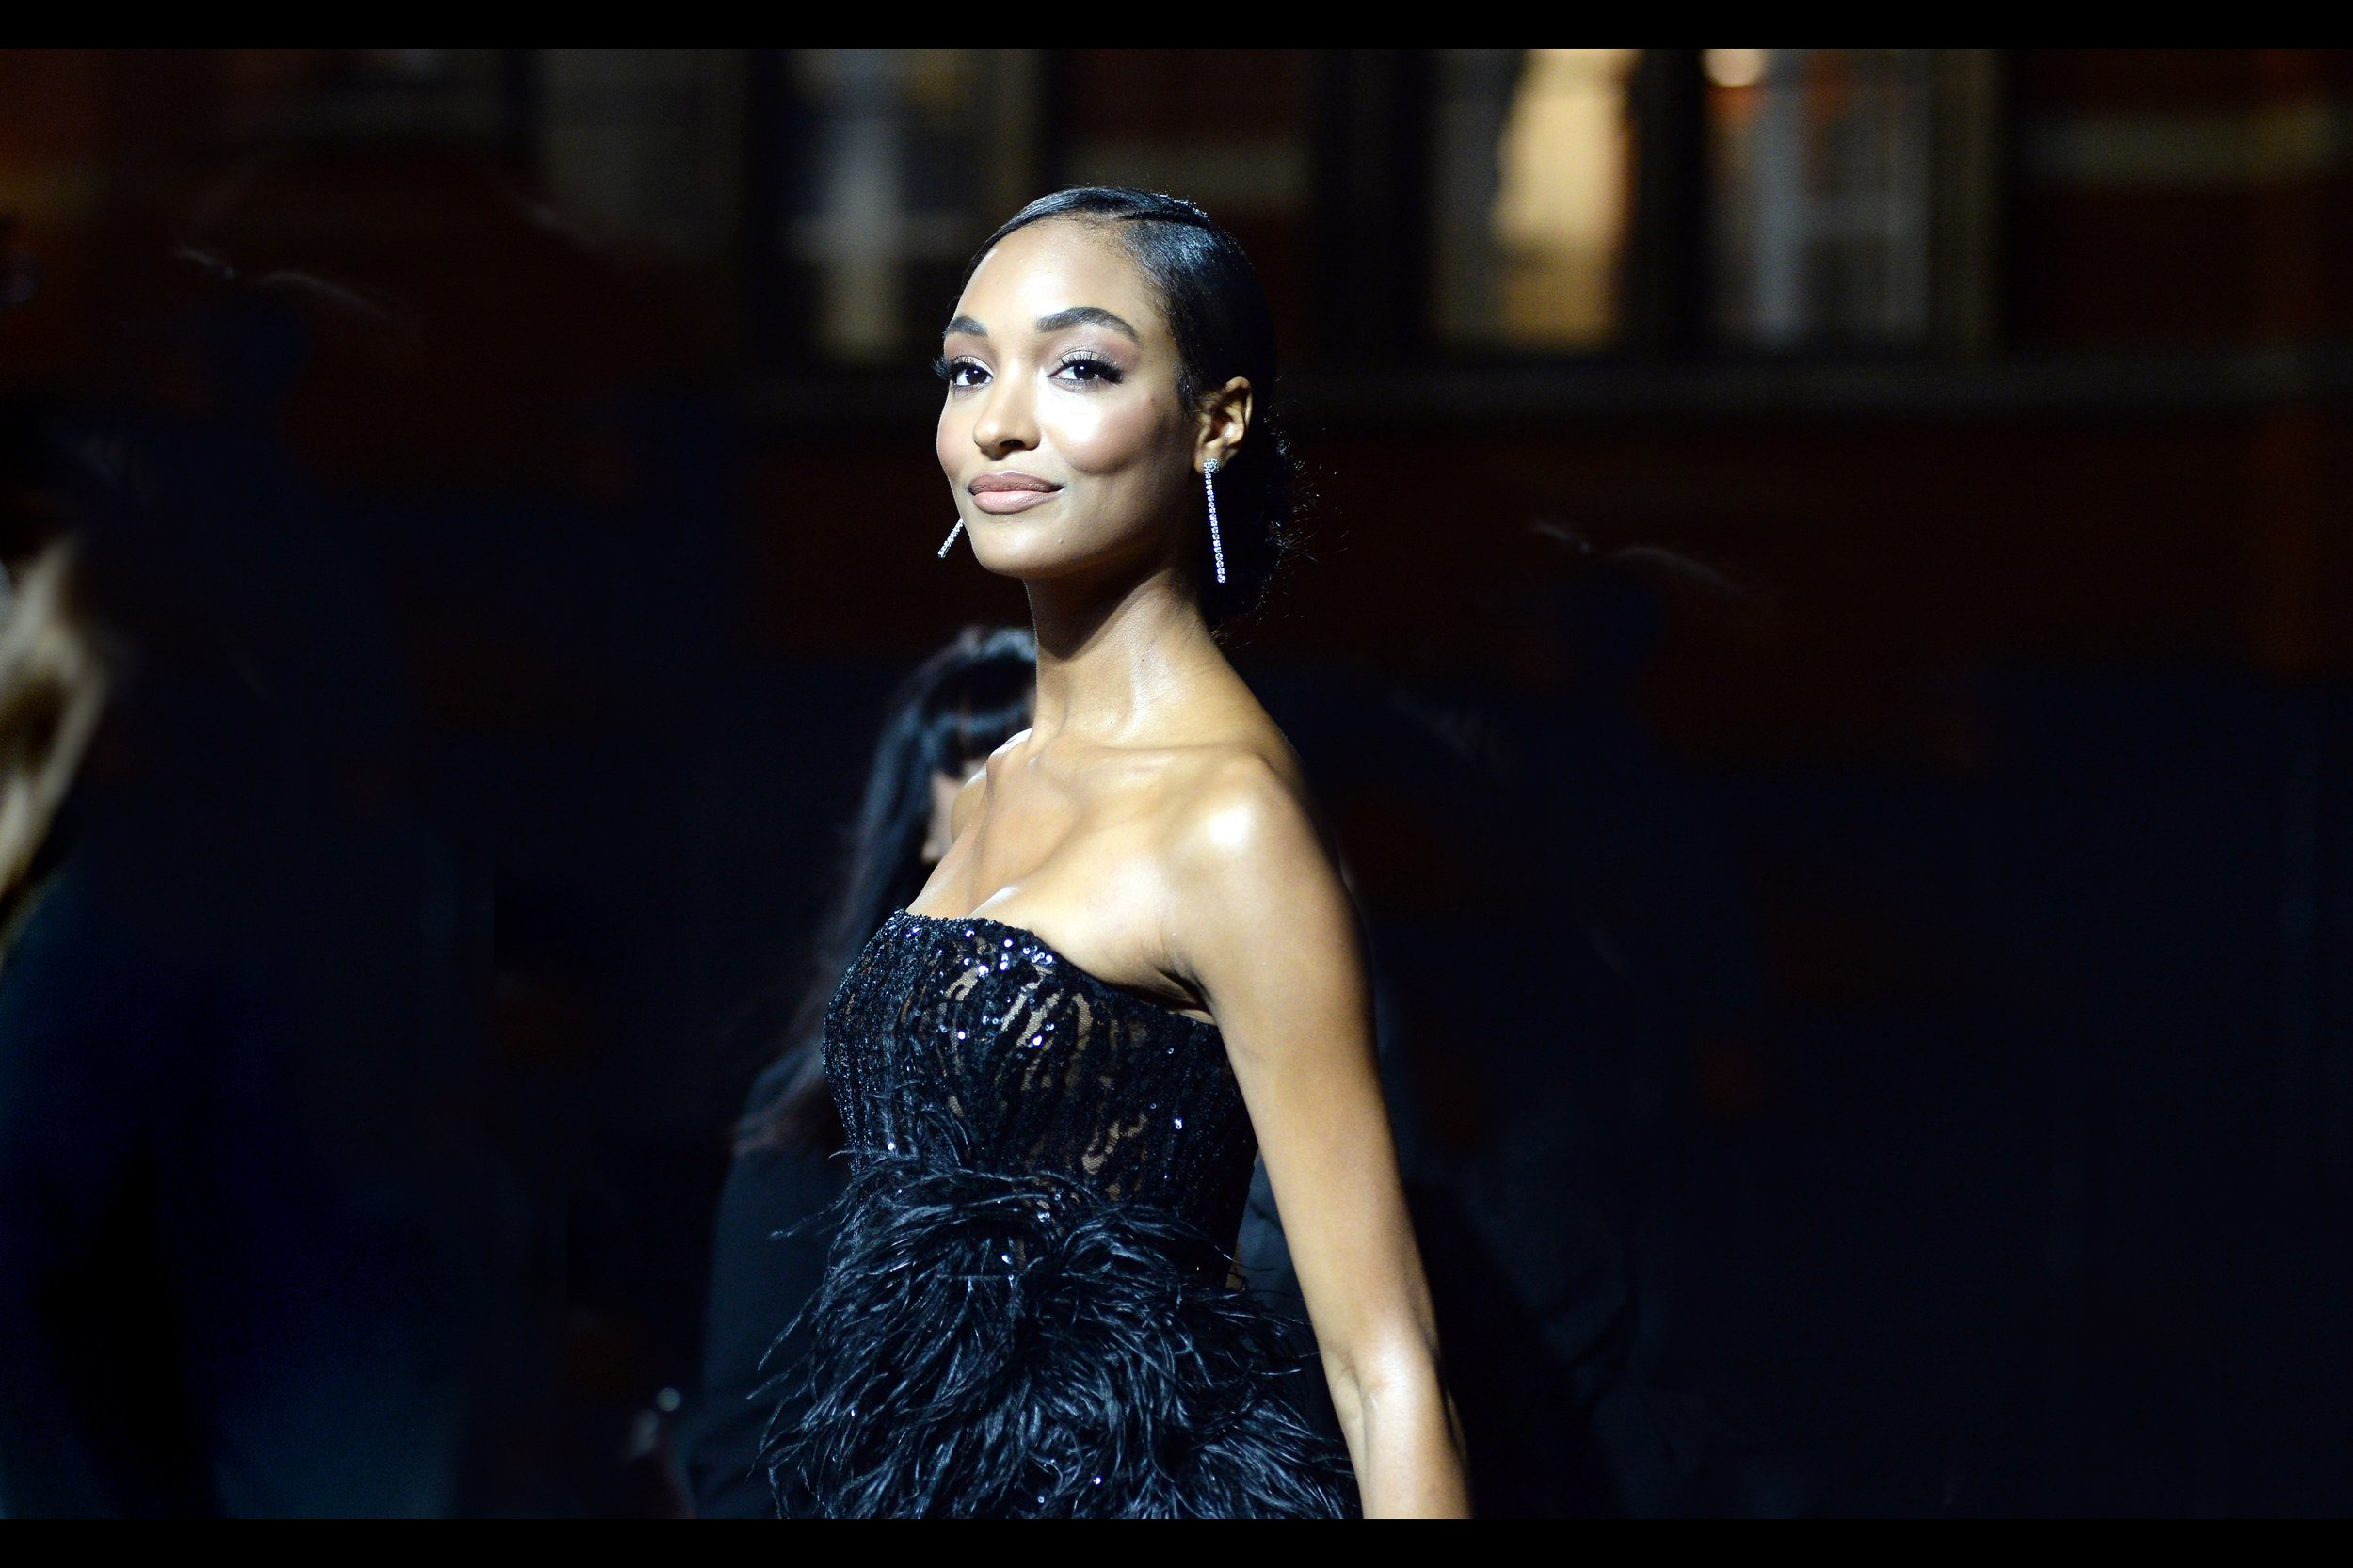 Not pictured : the train of Jourdan Dunn's dress.